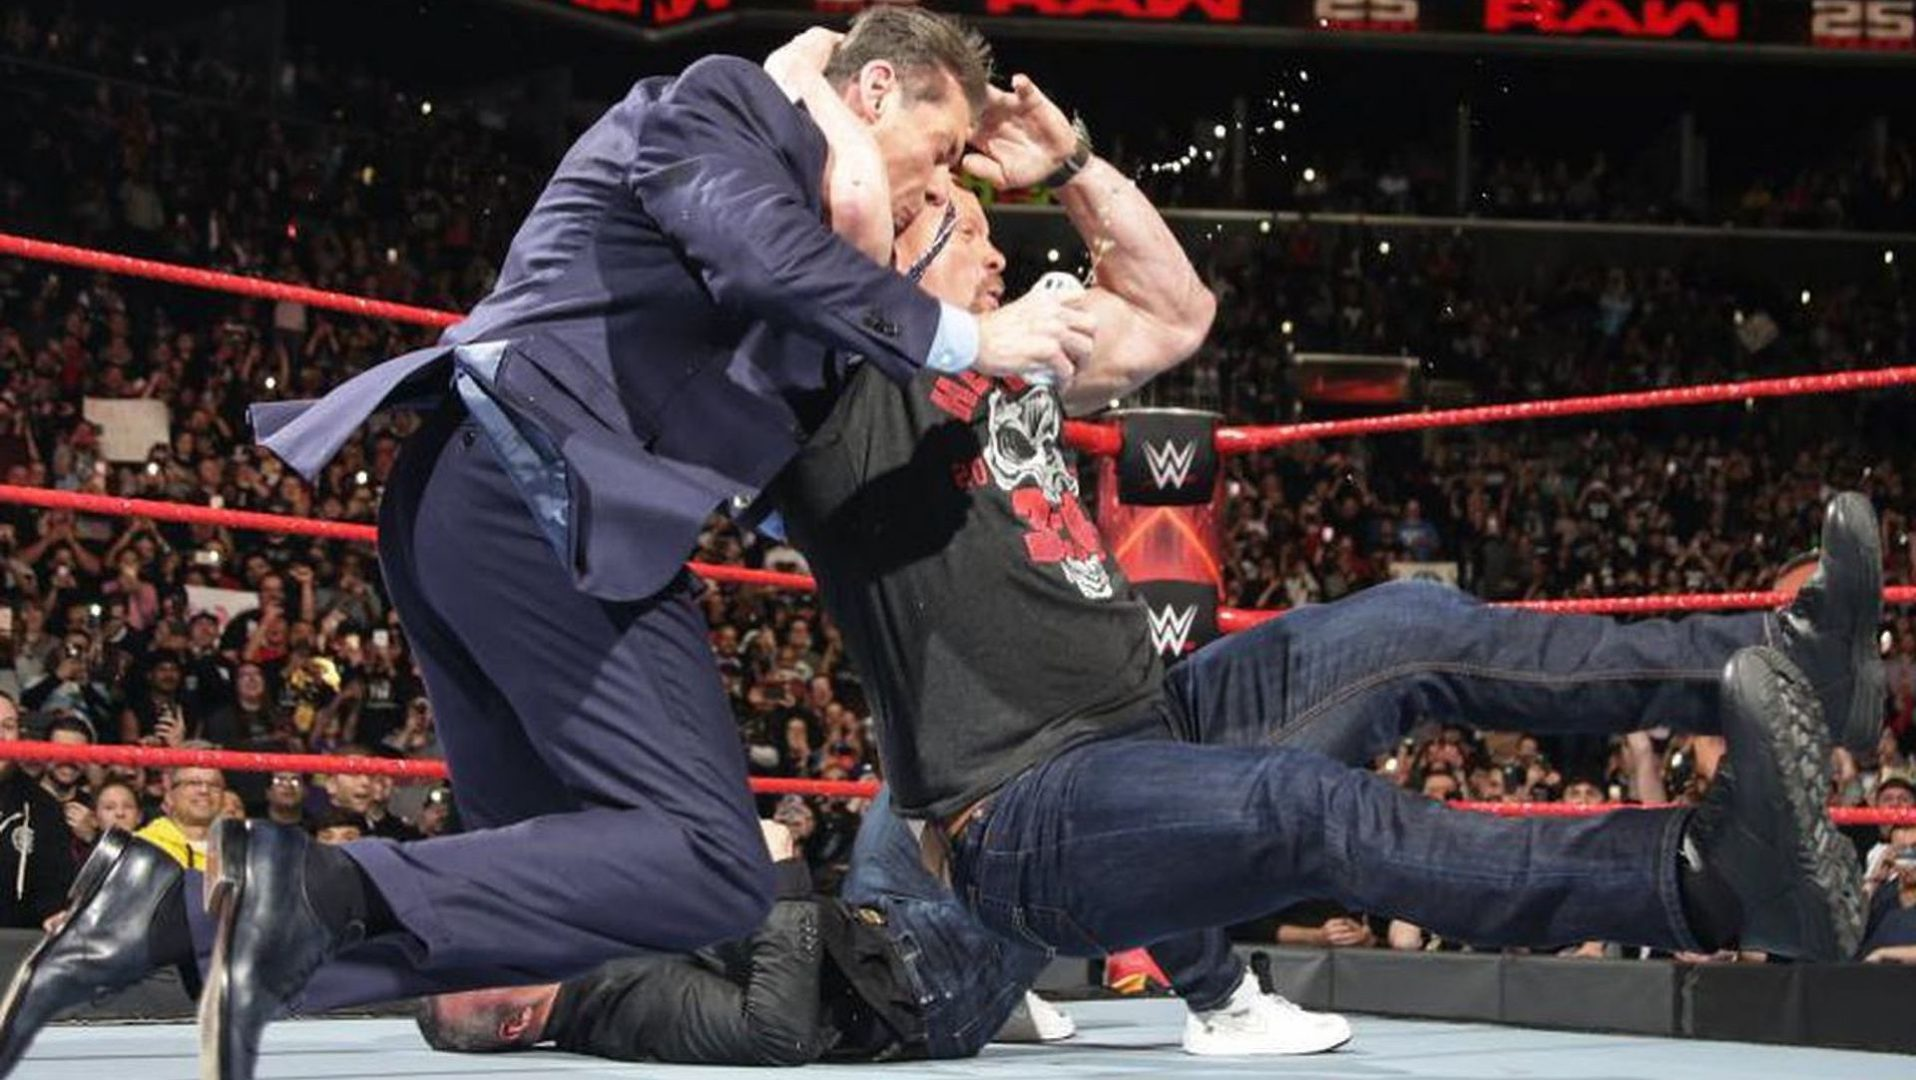 Steve Austin and Vince McMahon on WWE Monday Night Raw.